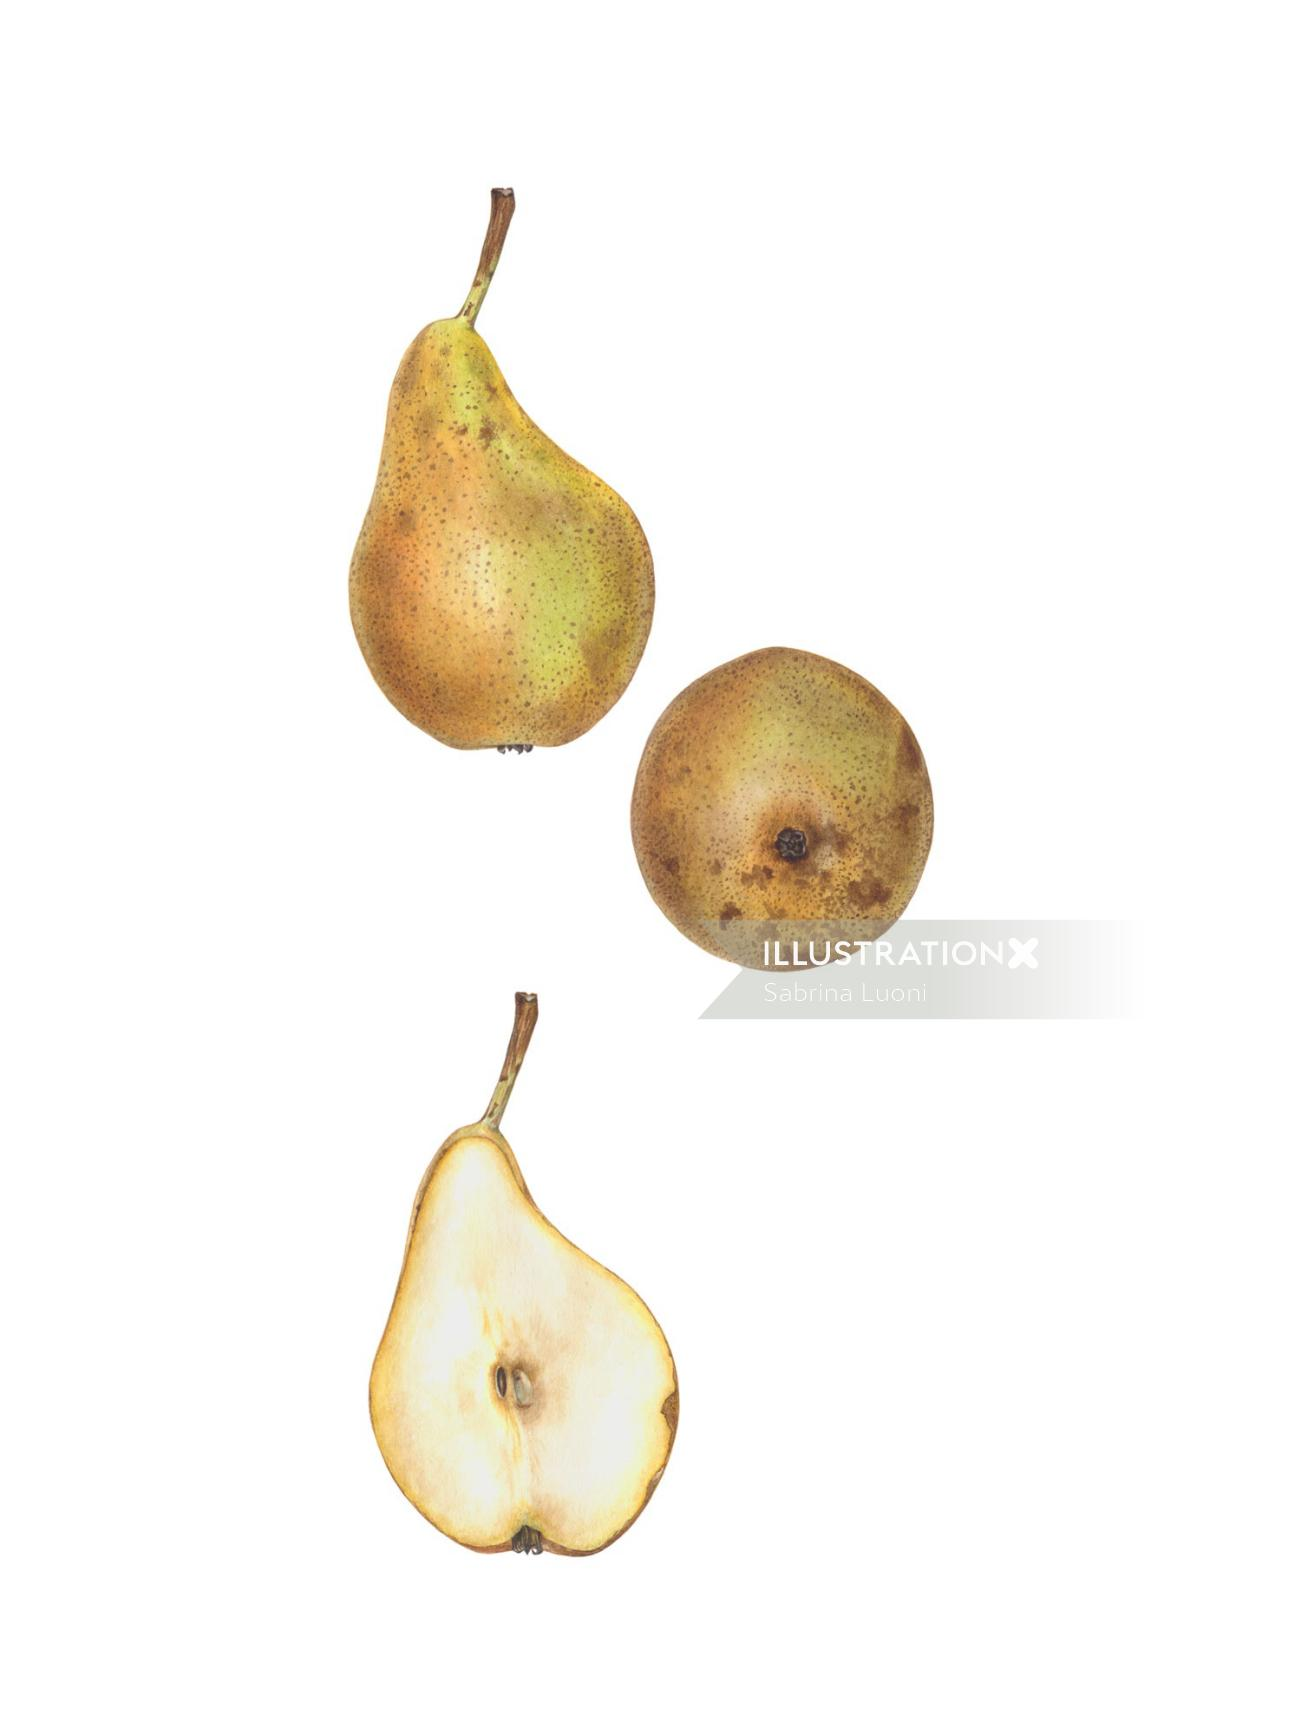 'Conference' Pear (Pyrus communis 'Conference').